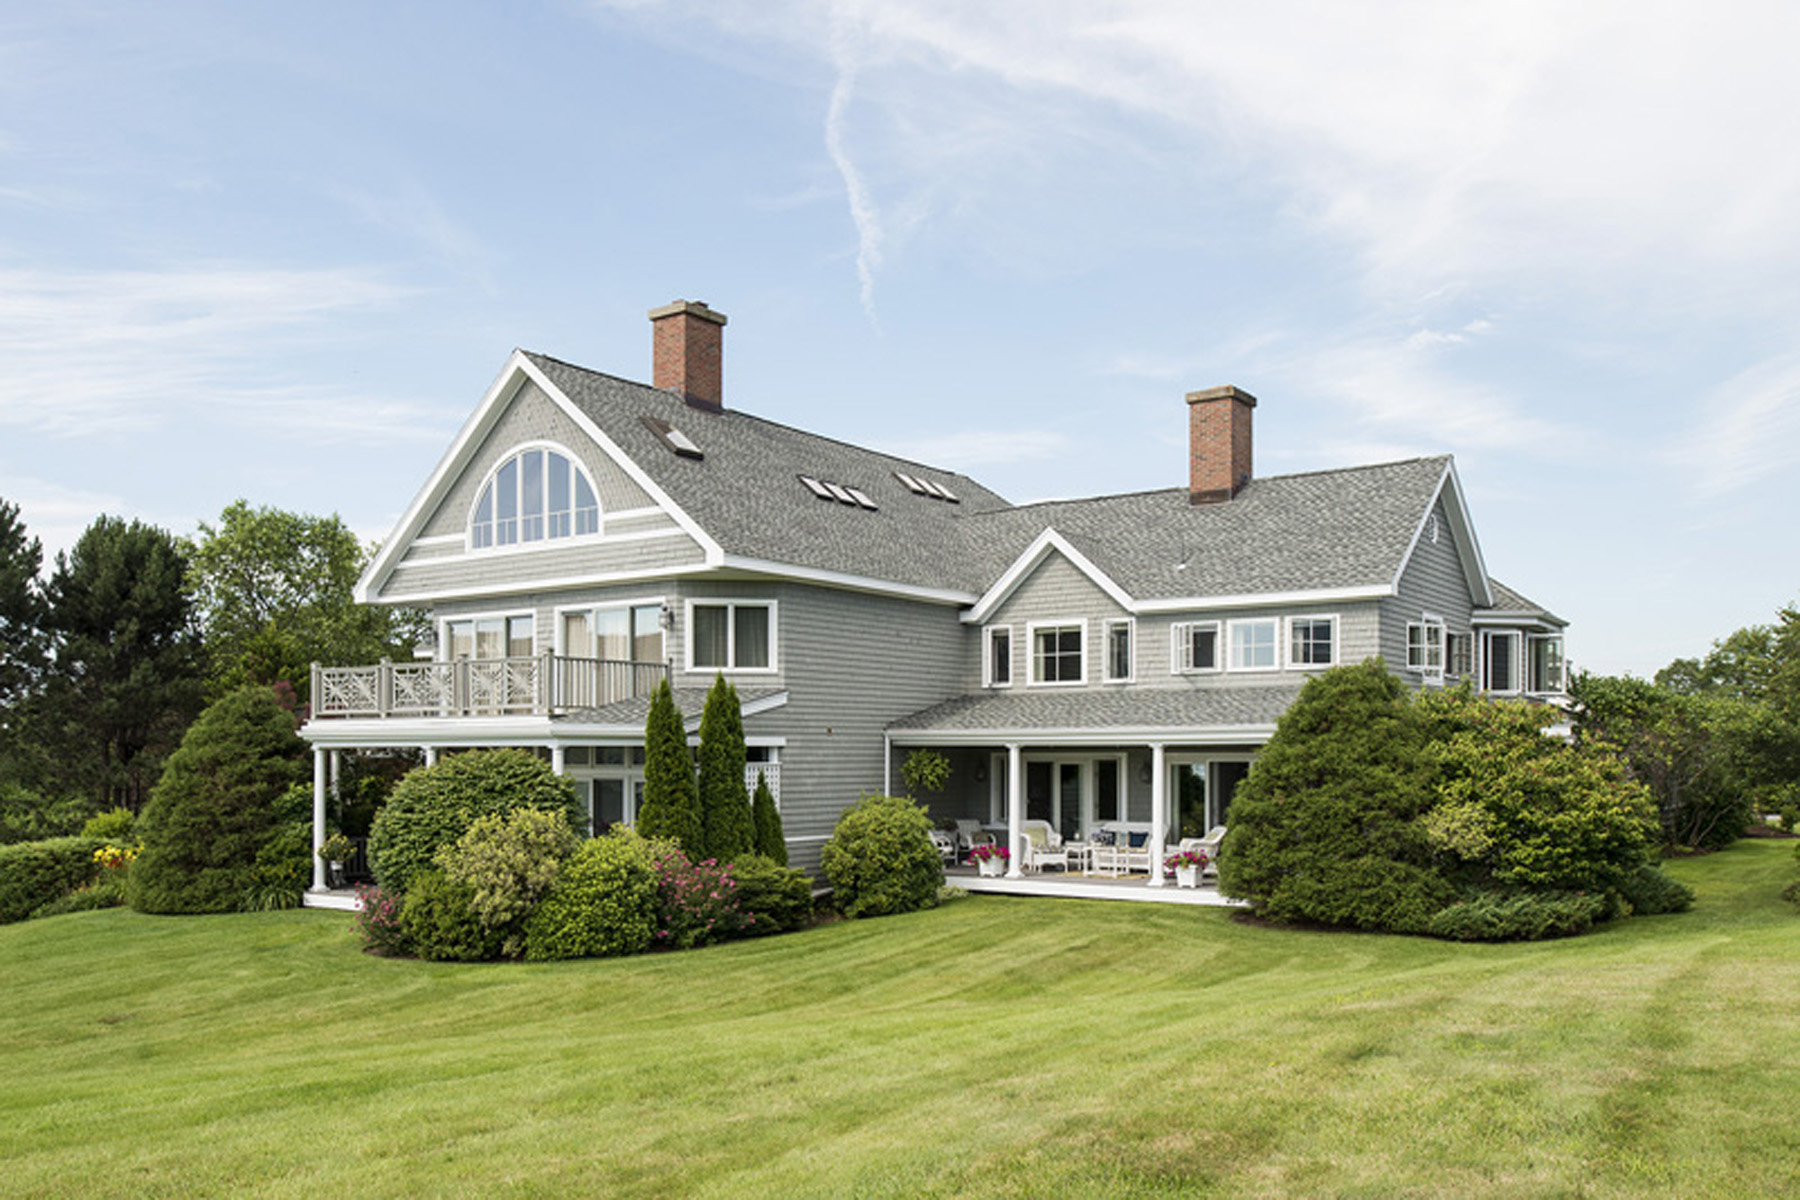 Condominium for Sale at 25 Atlantic Drive (#25) Scarborough, Maine 04074 United States